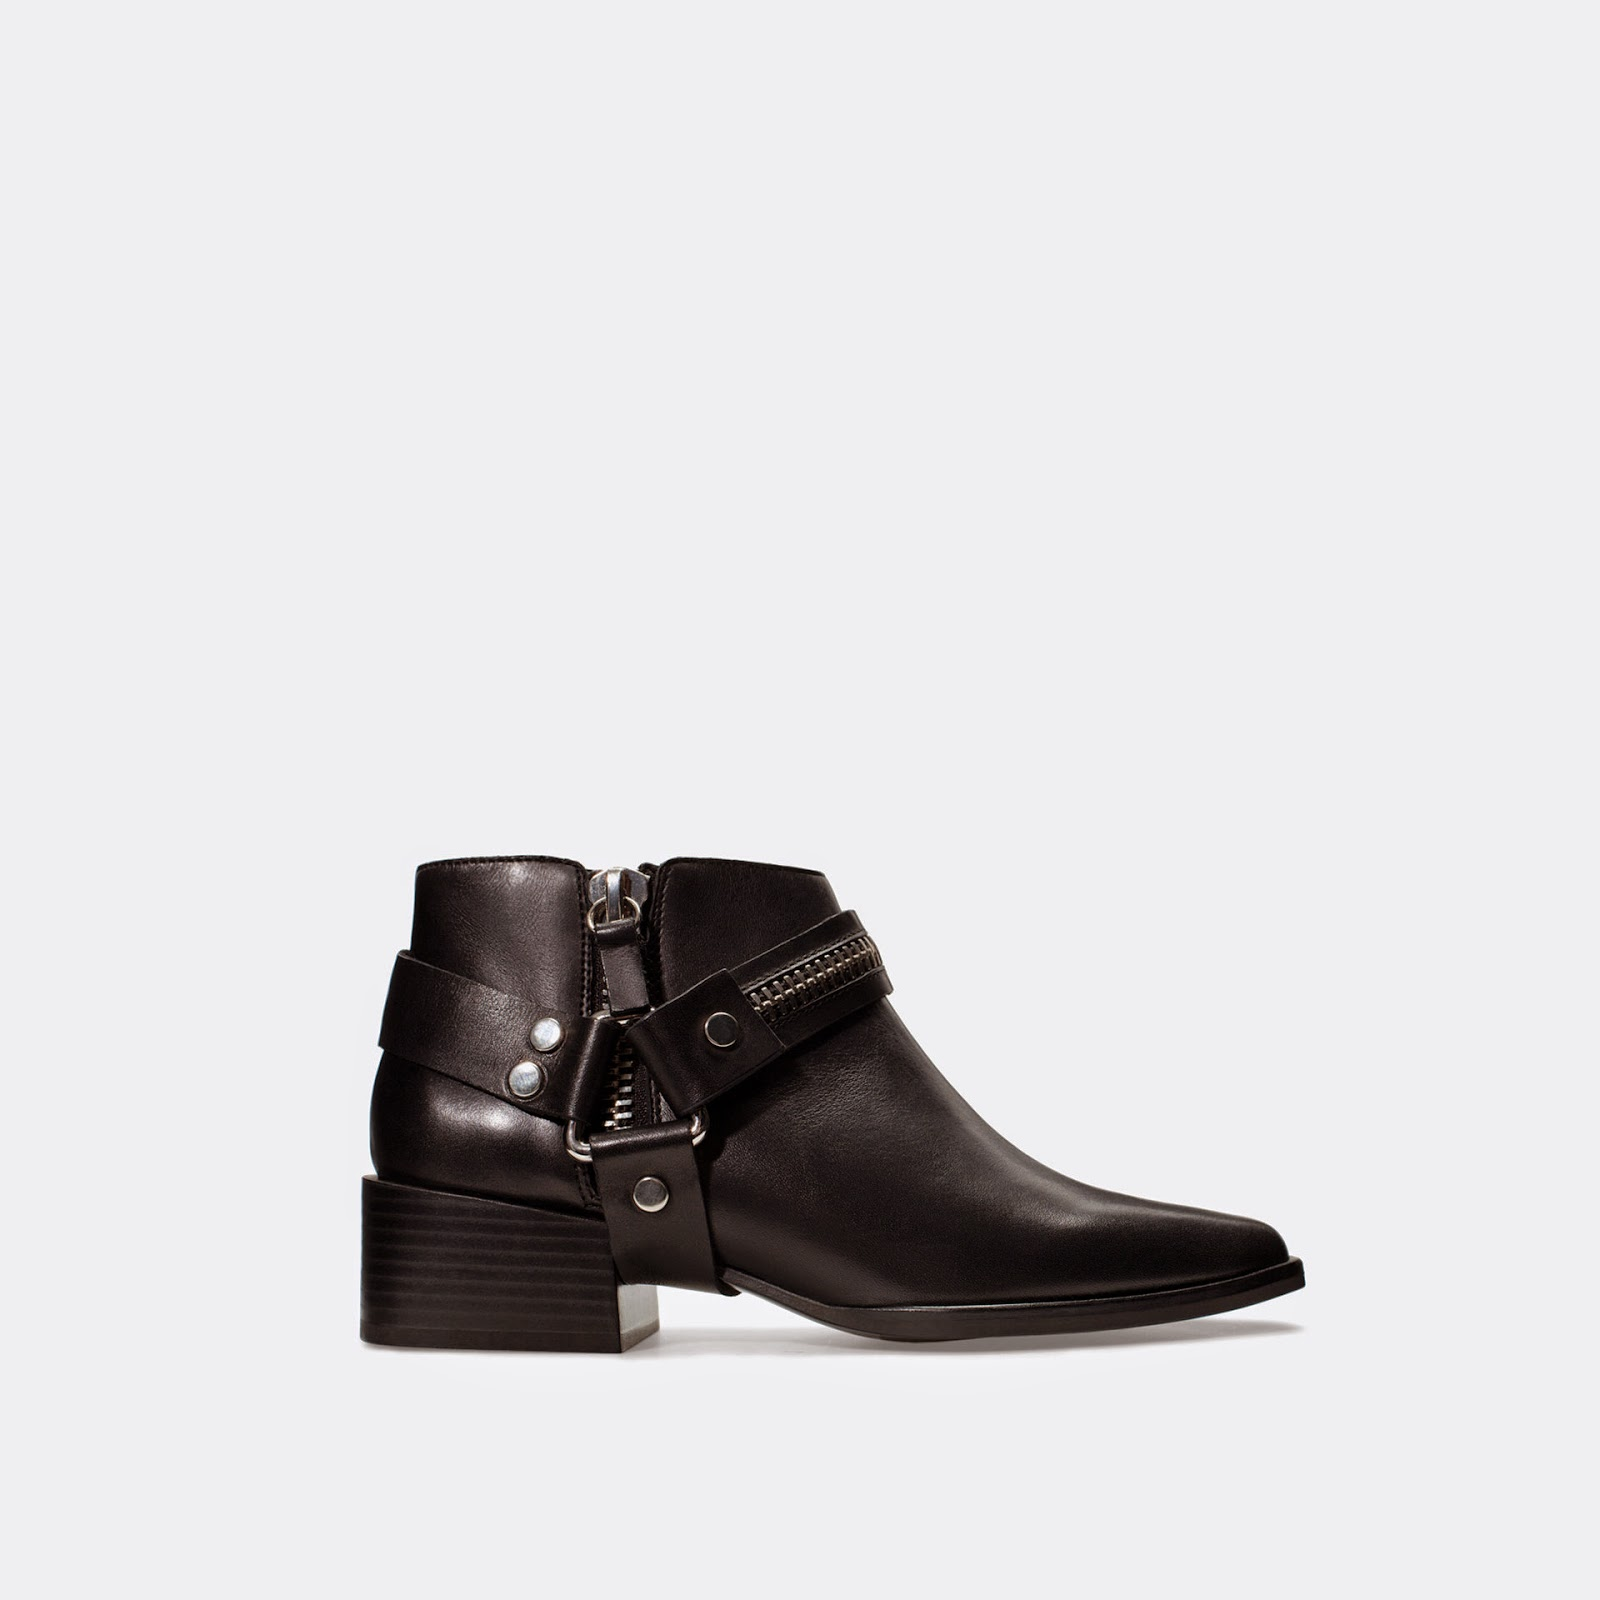 zara boot buckle